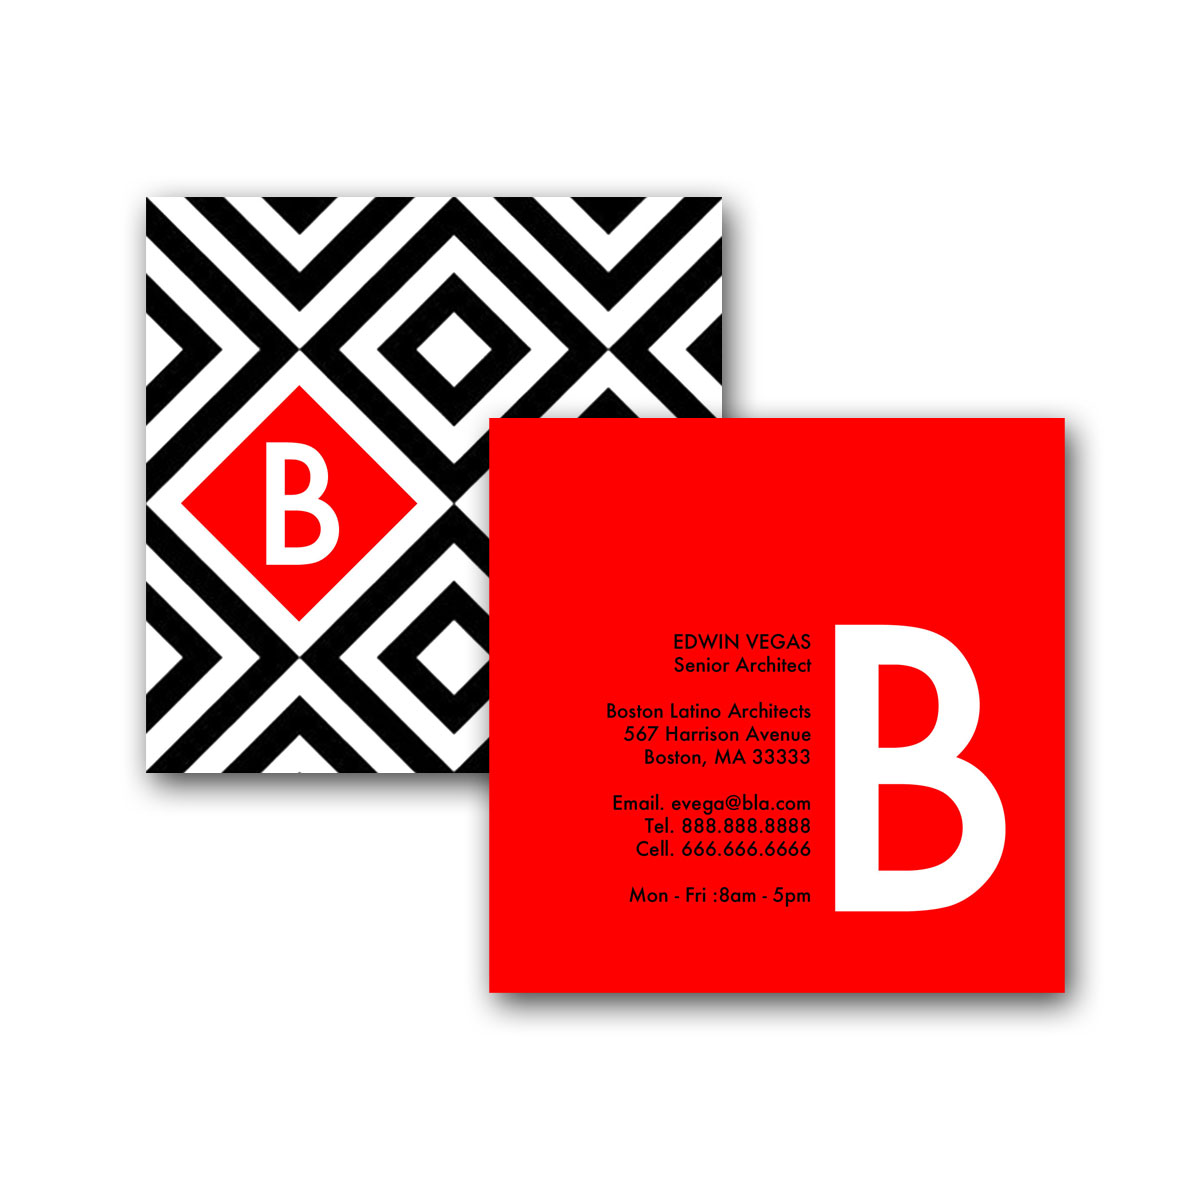 SQUARES IN A SQUARE - SQUARE BUSINESS CARD - Creative Solutions Studio